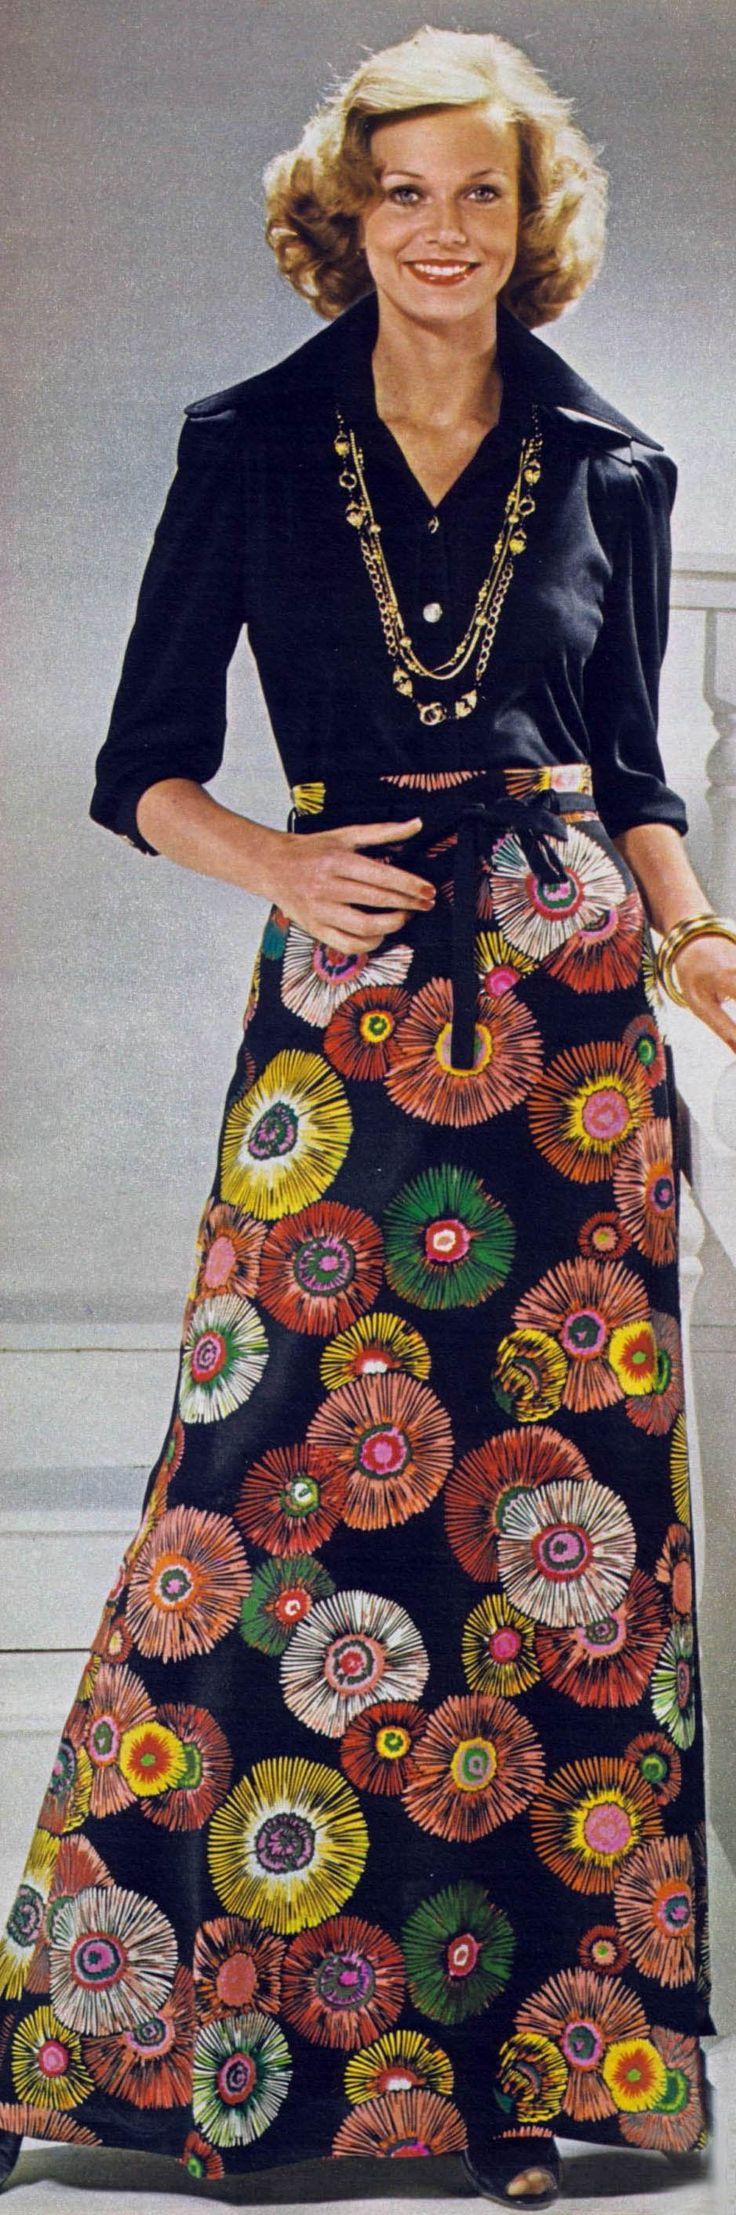 Fashion for Women. 1975...Shelly Hack...love this picture!